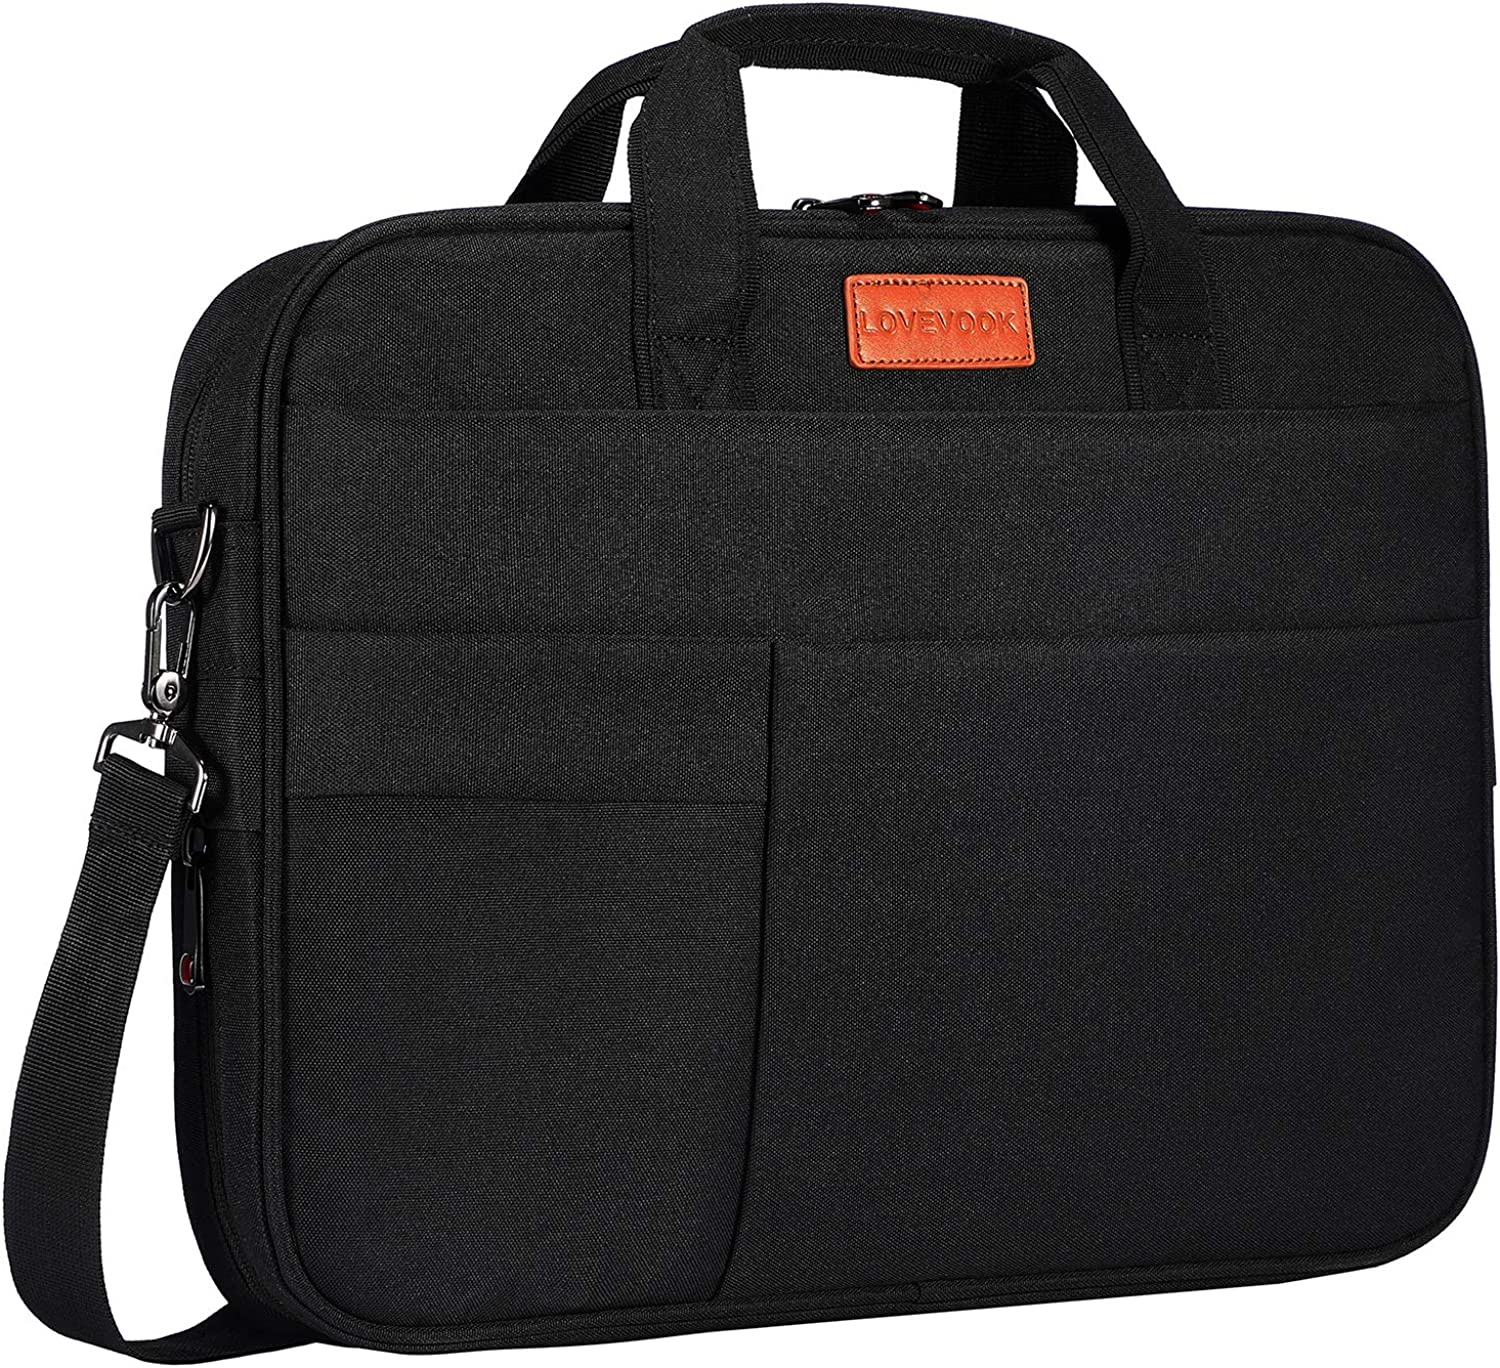 Laptop Messenger Bag for Men Women, 15.6 Inch Shock-proof Carrying Briefcase with Expandable Capacity